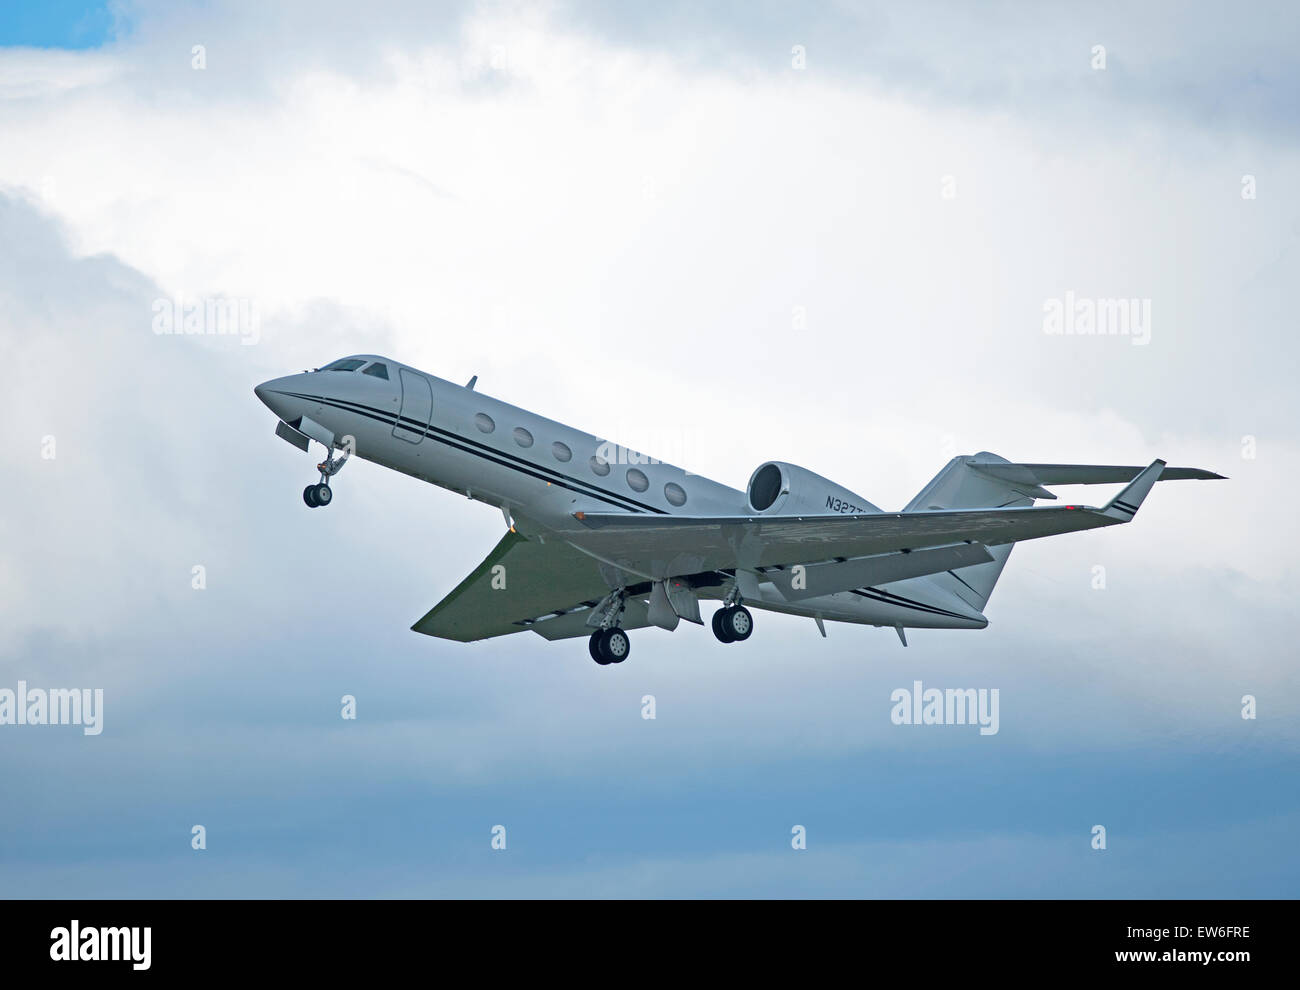 Gulfstream Aerospace G-IV Gulfstream IV-SP leaving Inverness airport, Scotland.   SCO 9895. - Stock Image